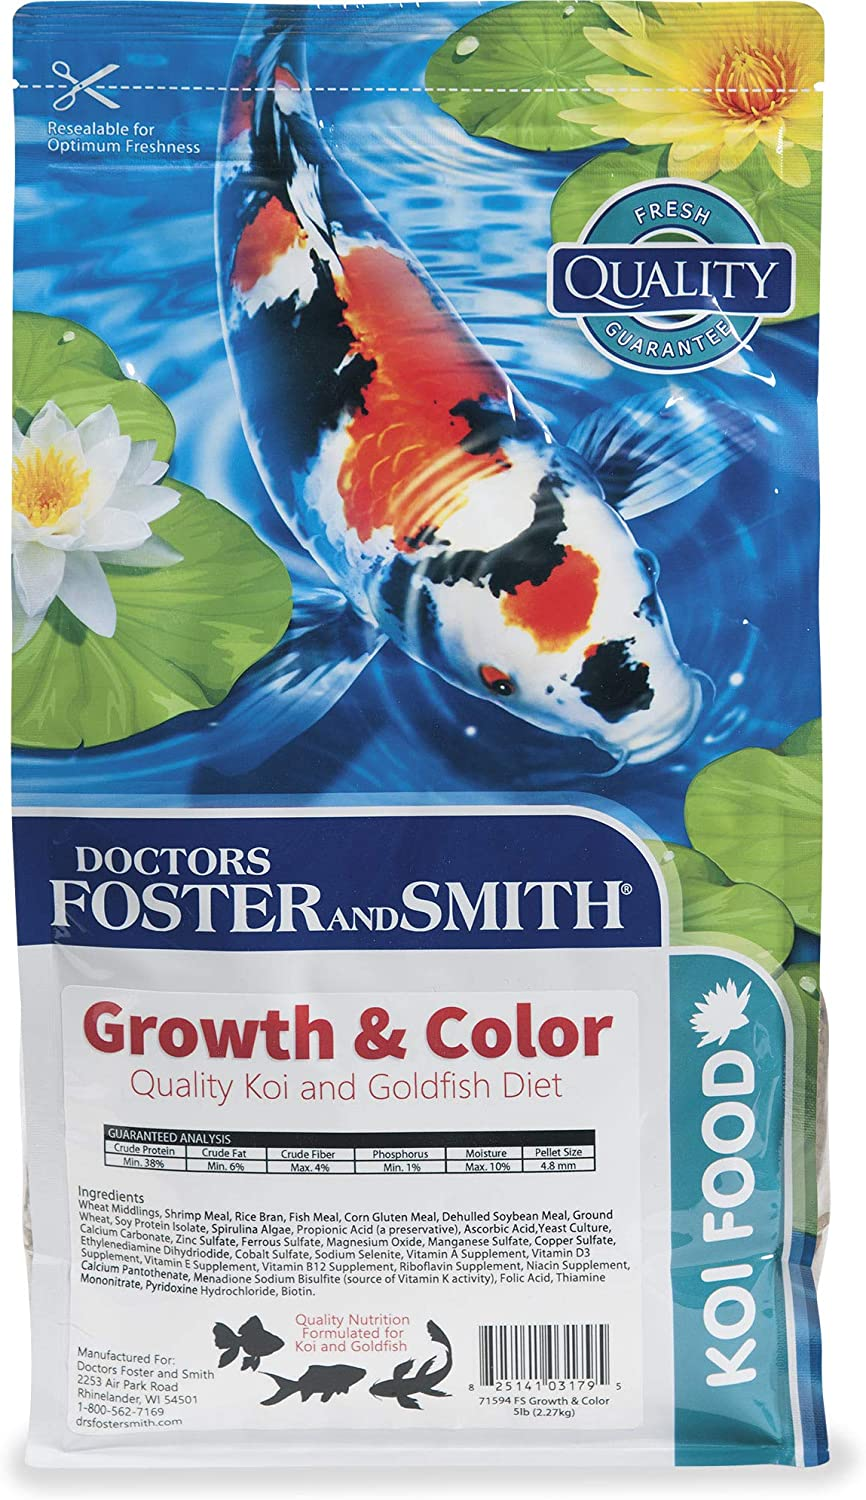 DRS. Foster and Smith Growth & Color Quality Koi and Goldfish Food, 5 lbs.